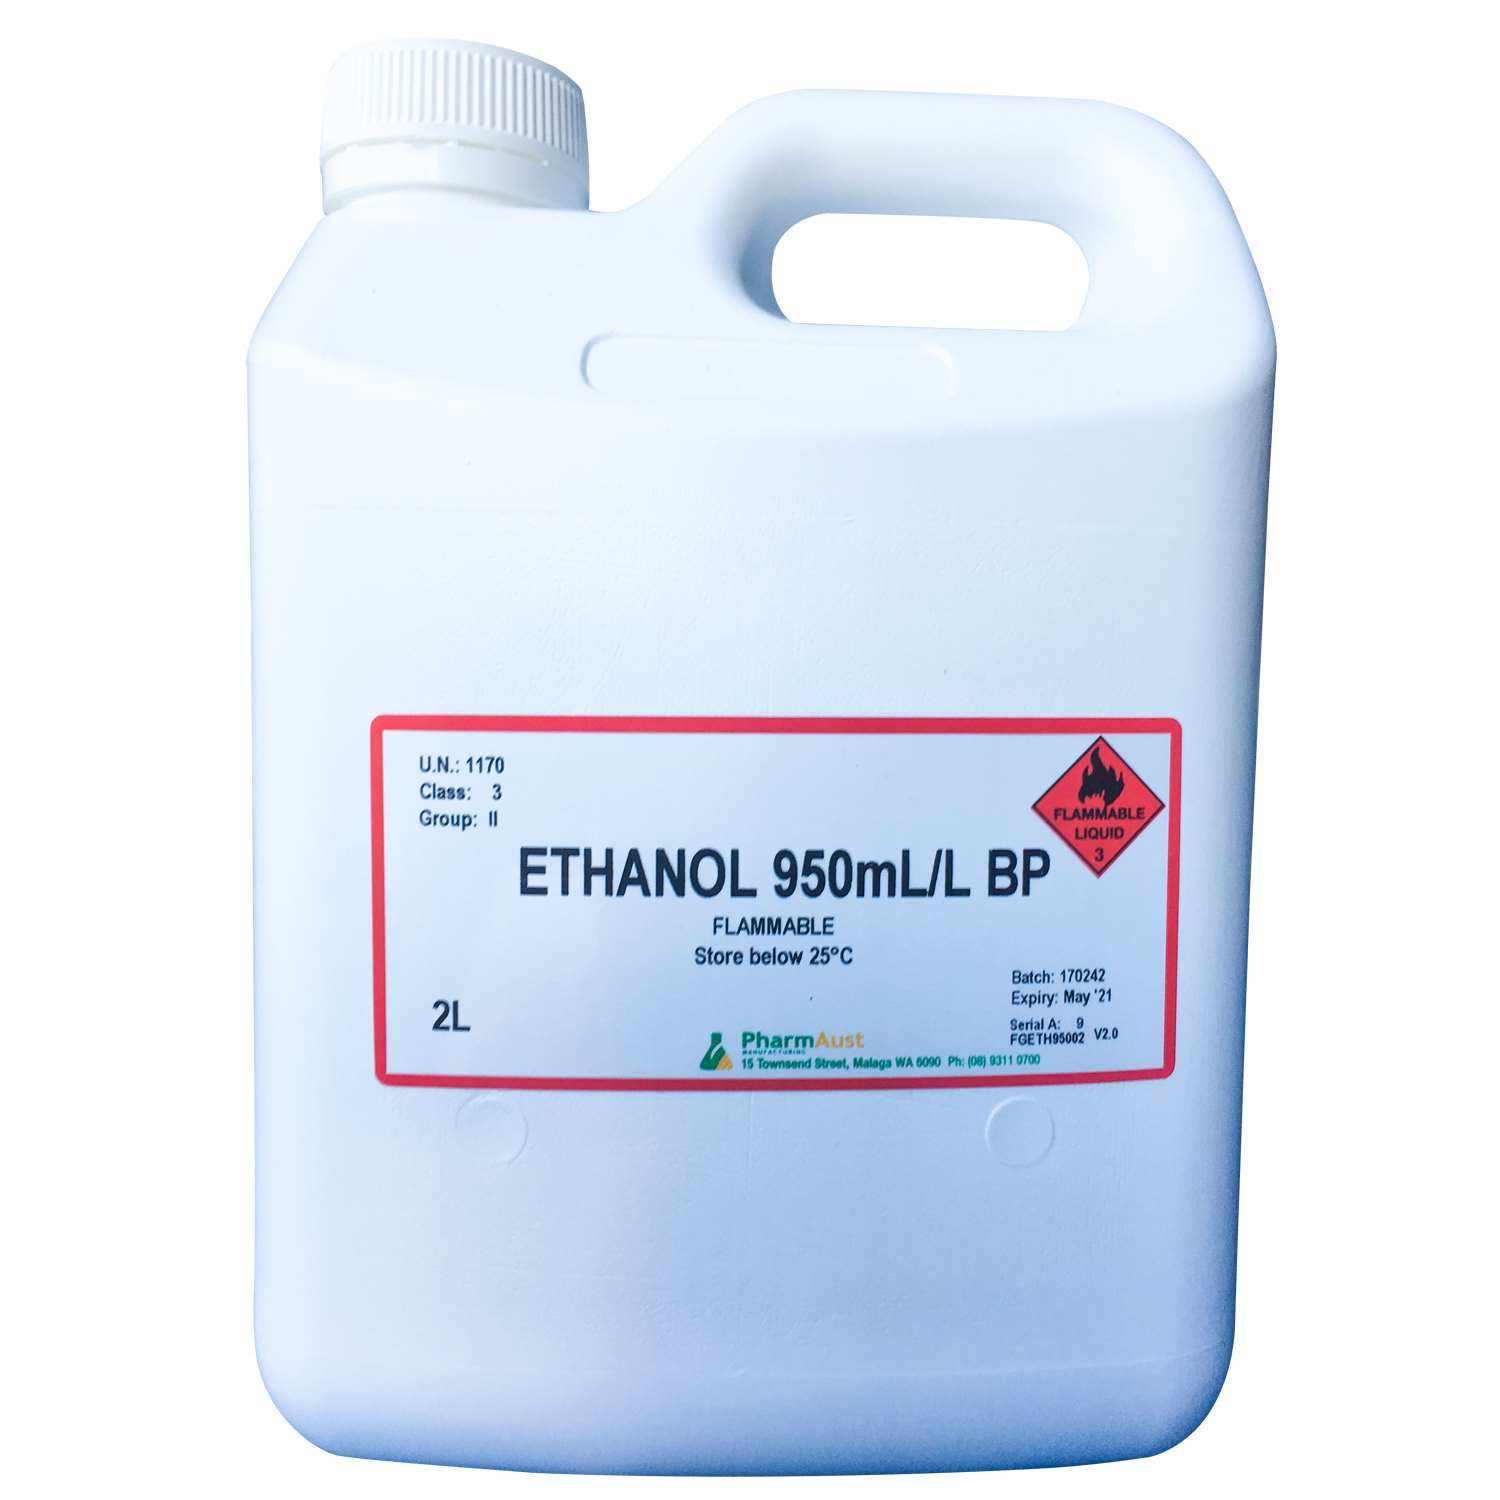 ETHANOL 95% BP - PharmAust Manufacturing - Health Products made in